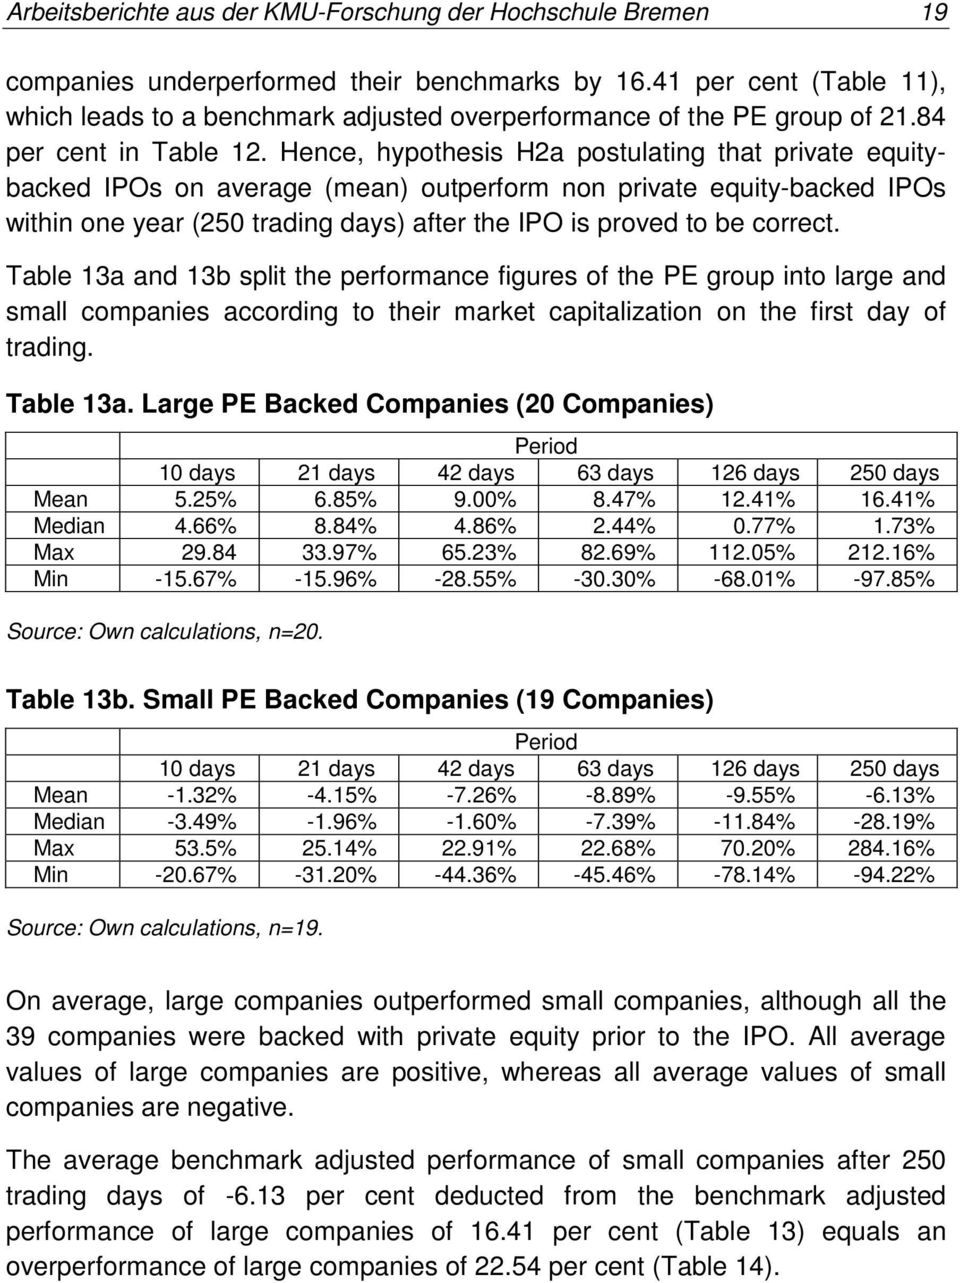 Hence, hypothesis H2a postulating that private equitybacked IPOs on average (mean) outperform non private equity-backed IPOs within one year (250 trading days) after the IPO is proved to be correct.